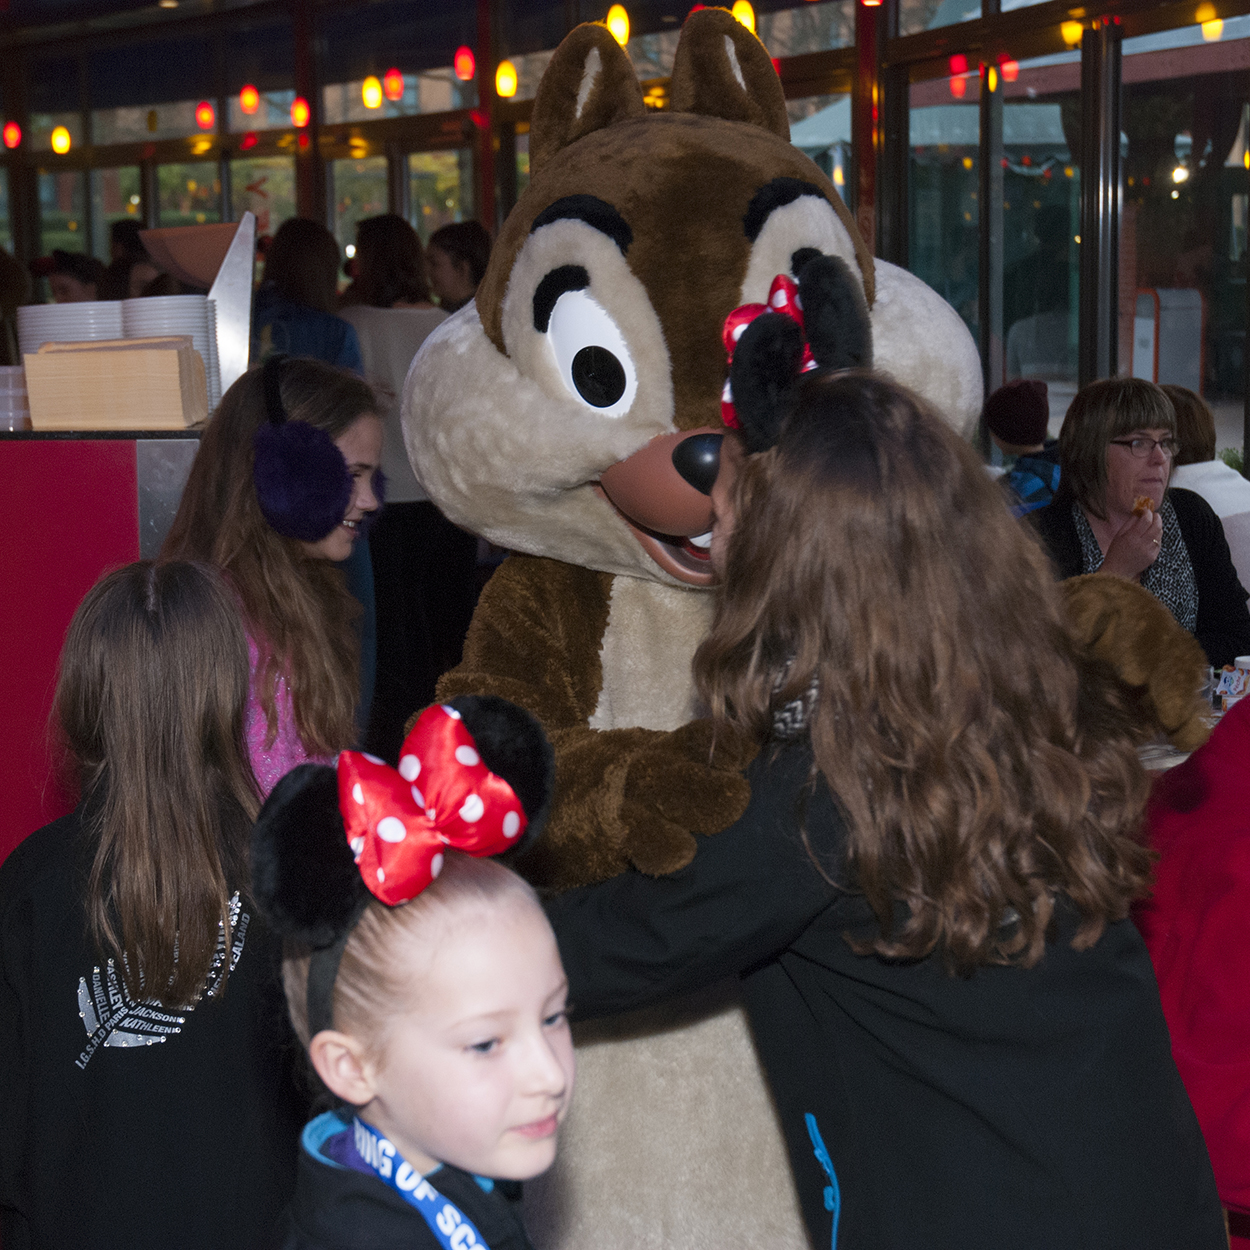 Pluto enjoying breakfast with smiling guests